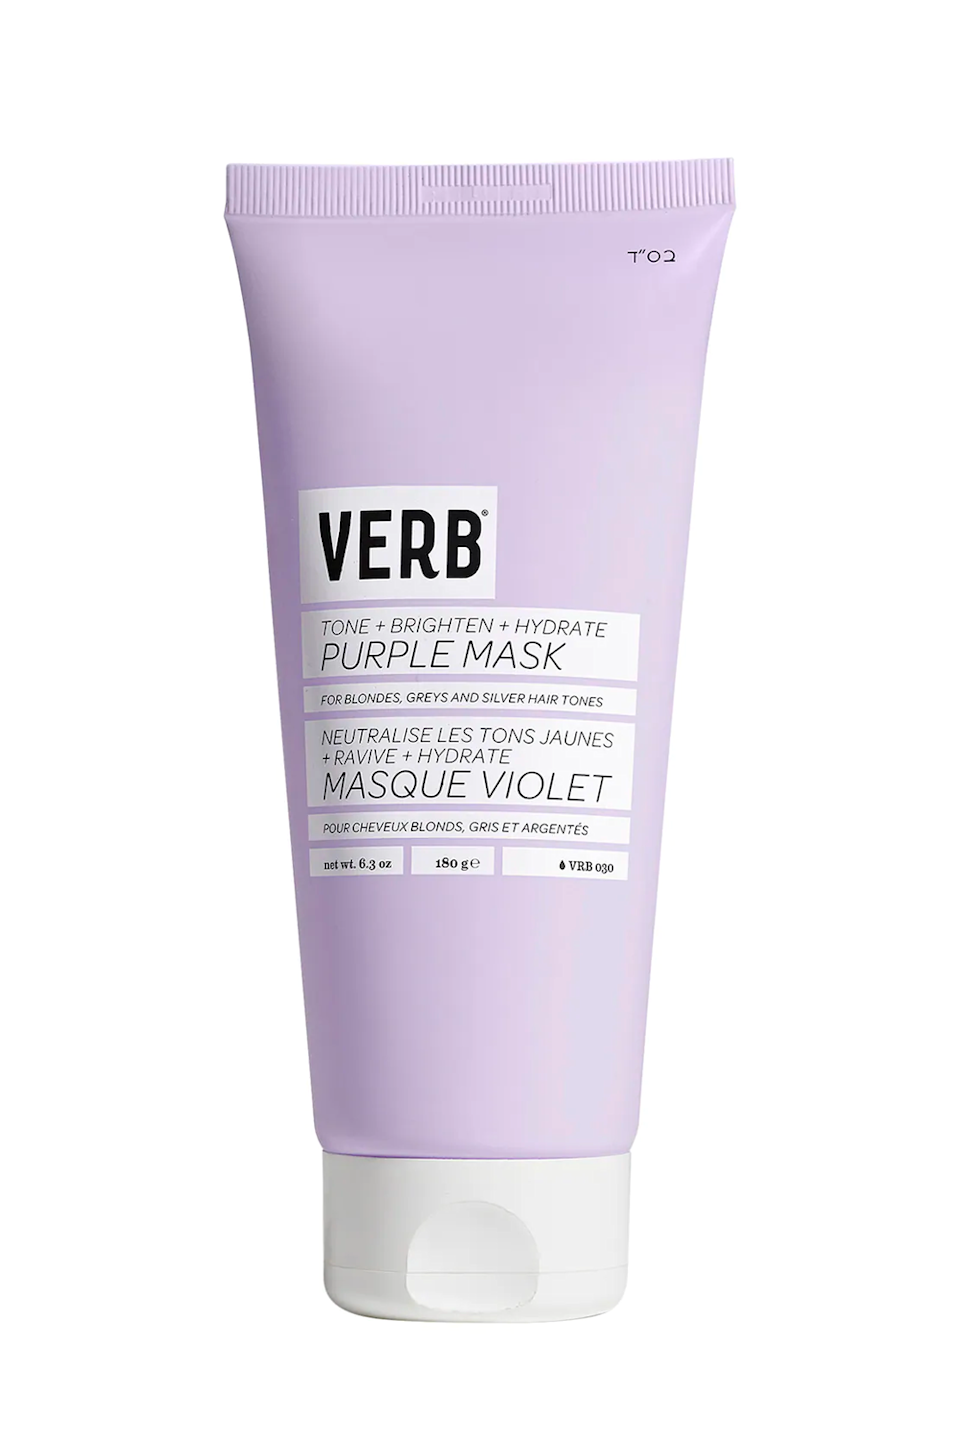 """<p><strong>Verb</strong></p><p>sephora.com</p><p><strong>$18.00</strong></p><p><a href=""""https://go.redirectingat.com?id=74968X1596630&url=https%3A%2F%2Fwww.sephora.com%2Fproduct%2Fverb-hair-care-purple-toning-hydrating-hair-mask-P457414&sref=https%3A%2F%2Fwww.cosmopolitan.com%2Fstyle-beauty%2Fbeauty%2Fg33576495%2Fbest-hair-toner%2F"""" rel=""""nofollow noopener"""" target=""""_blank"""" data-ylk=""""slk:Shop Now"""" class=""""link rapid-noclick-resp"""">Shop Now</a></p><p>If you're trying to tone and hydrate your hair simultaneously, you're in luck. This multitasking treatment from Verb <strong>helps cancel out brassy and yellow tones in blonde hair while also addressing <a href=""""https://www.cosmopolitan.com/style-beauty/beauty/a29873251/how-to-fix-dry-hair-tips/"""" rel=""""nofollow noopener"""" target=""""_blank"""" data-ylk=""""slk:dryness"""" class=""""link rapid-noclick-resp"""">dryness</a> and damage</strong> with a handful of moisturizing ingredients (like acai extract and vitamin B5). After shampooing, comb the mask through your damp hair and let it sit for 20 minutes max before rinsing it all the way out.</p>"""